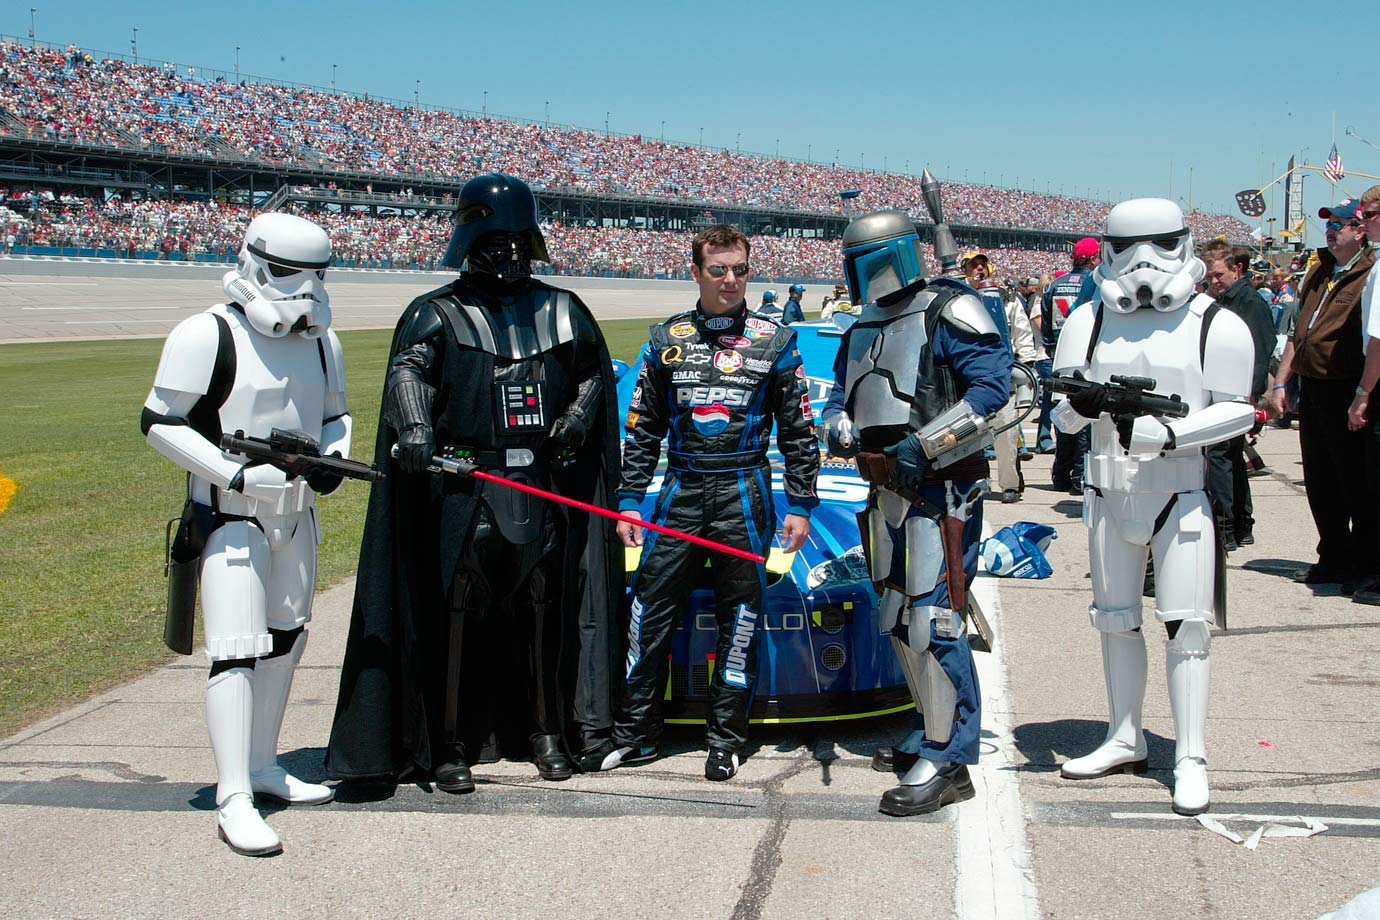 Jeff Gordon poses with Darth Vader, Jango Fett, and stormtroopers prior to the Aaron's 499 on May 1, 2005 at Talladega Superspeedway in Alabama.